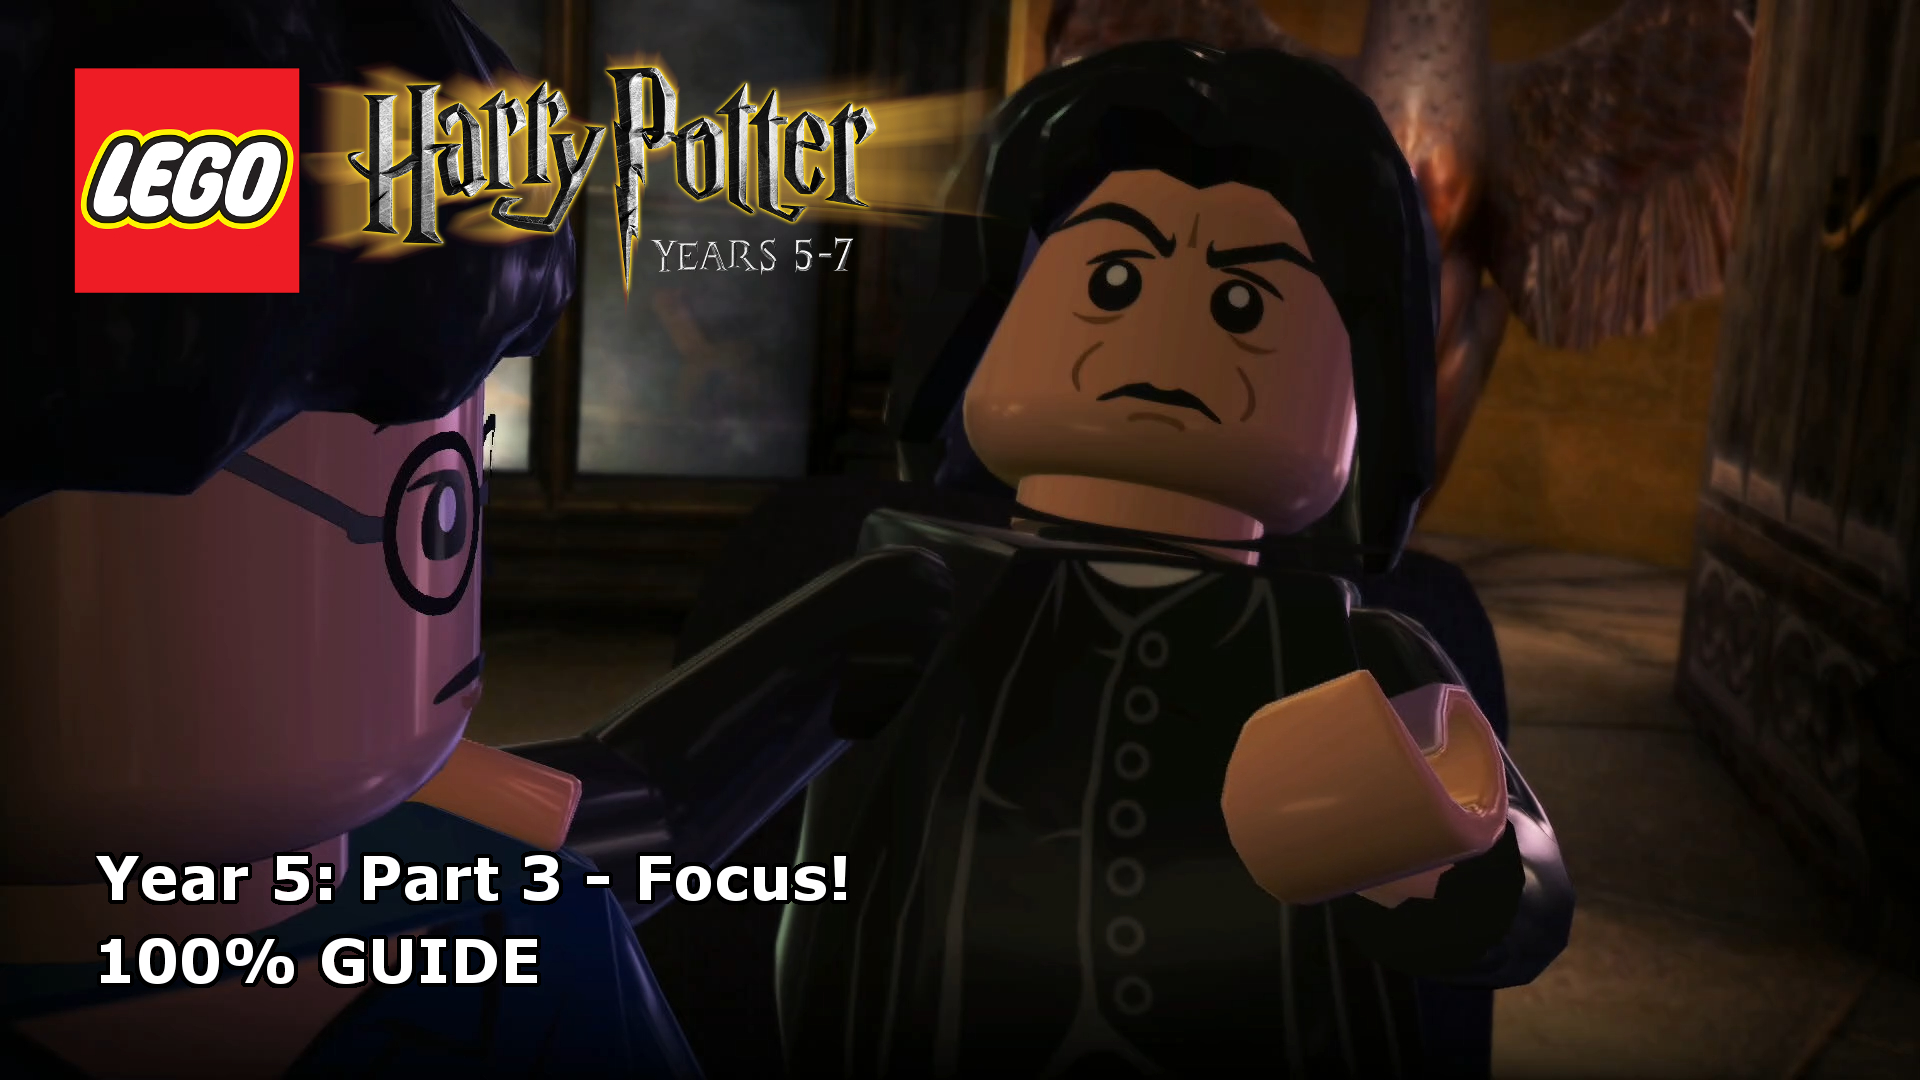 Lego Harry Potter Years 5 7 Focus 100 Guide